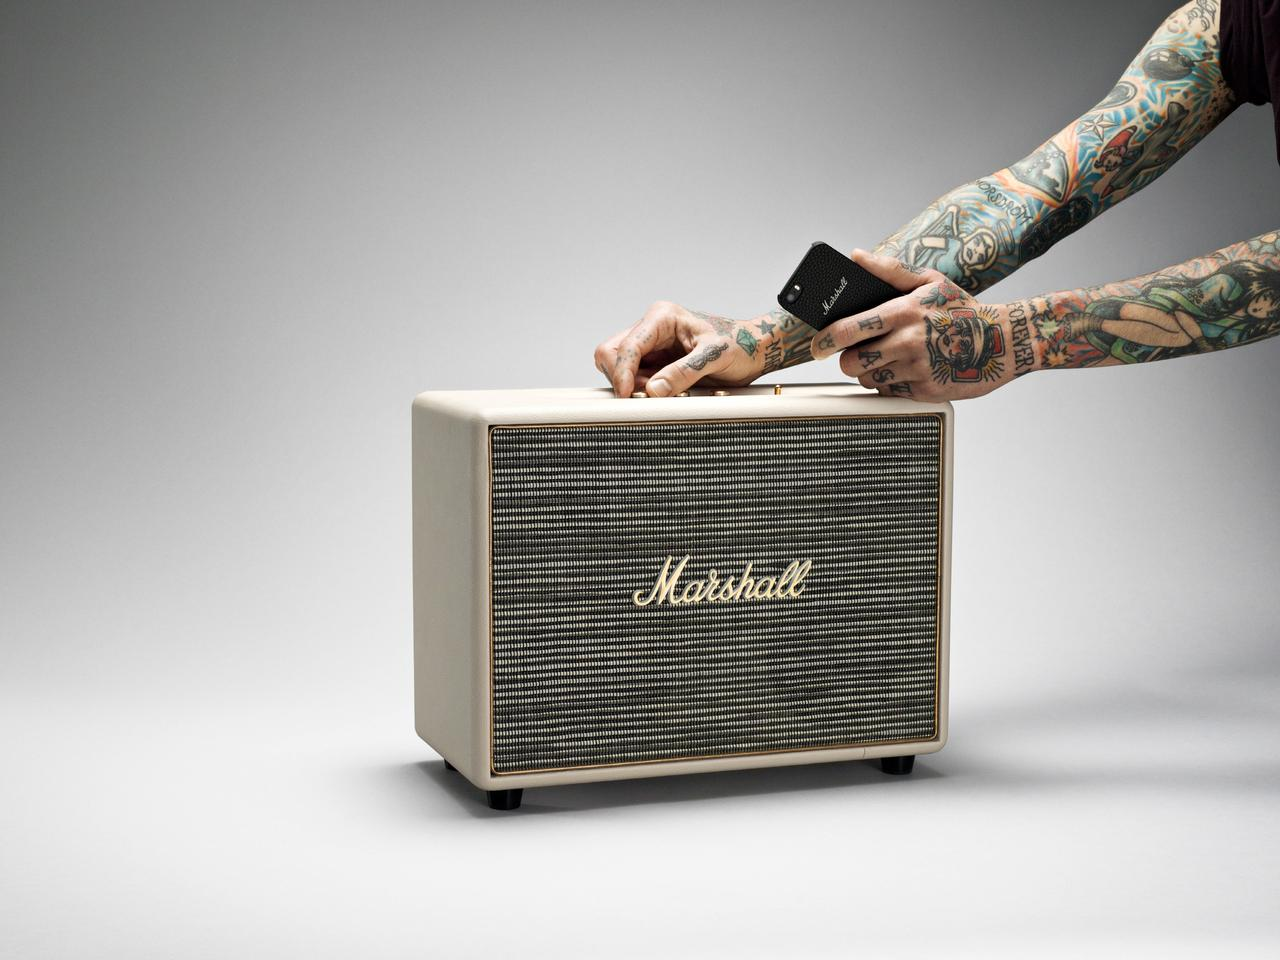 The Marshall Woburn streaming speaker system